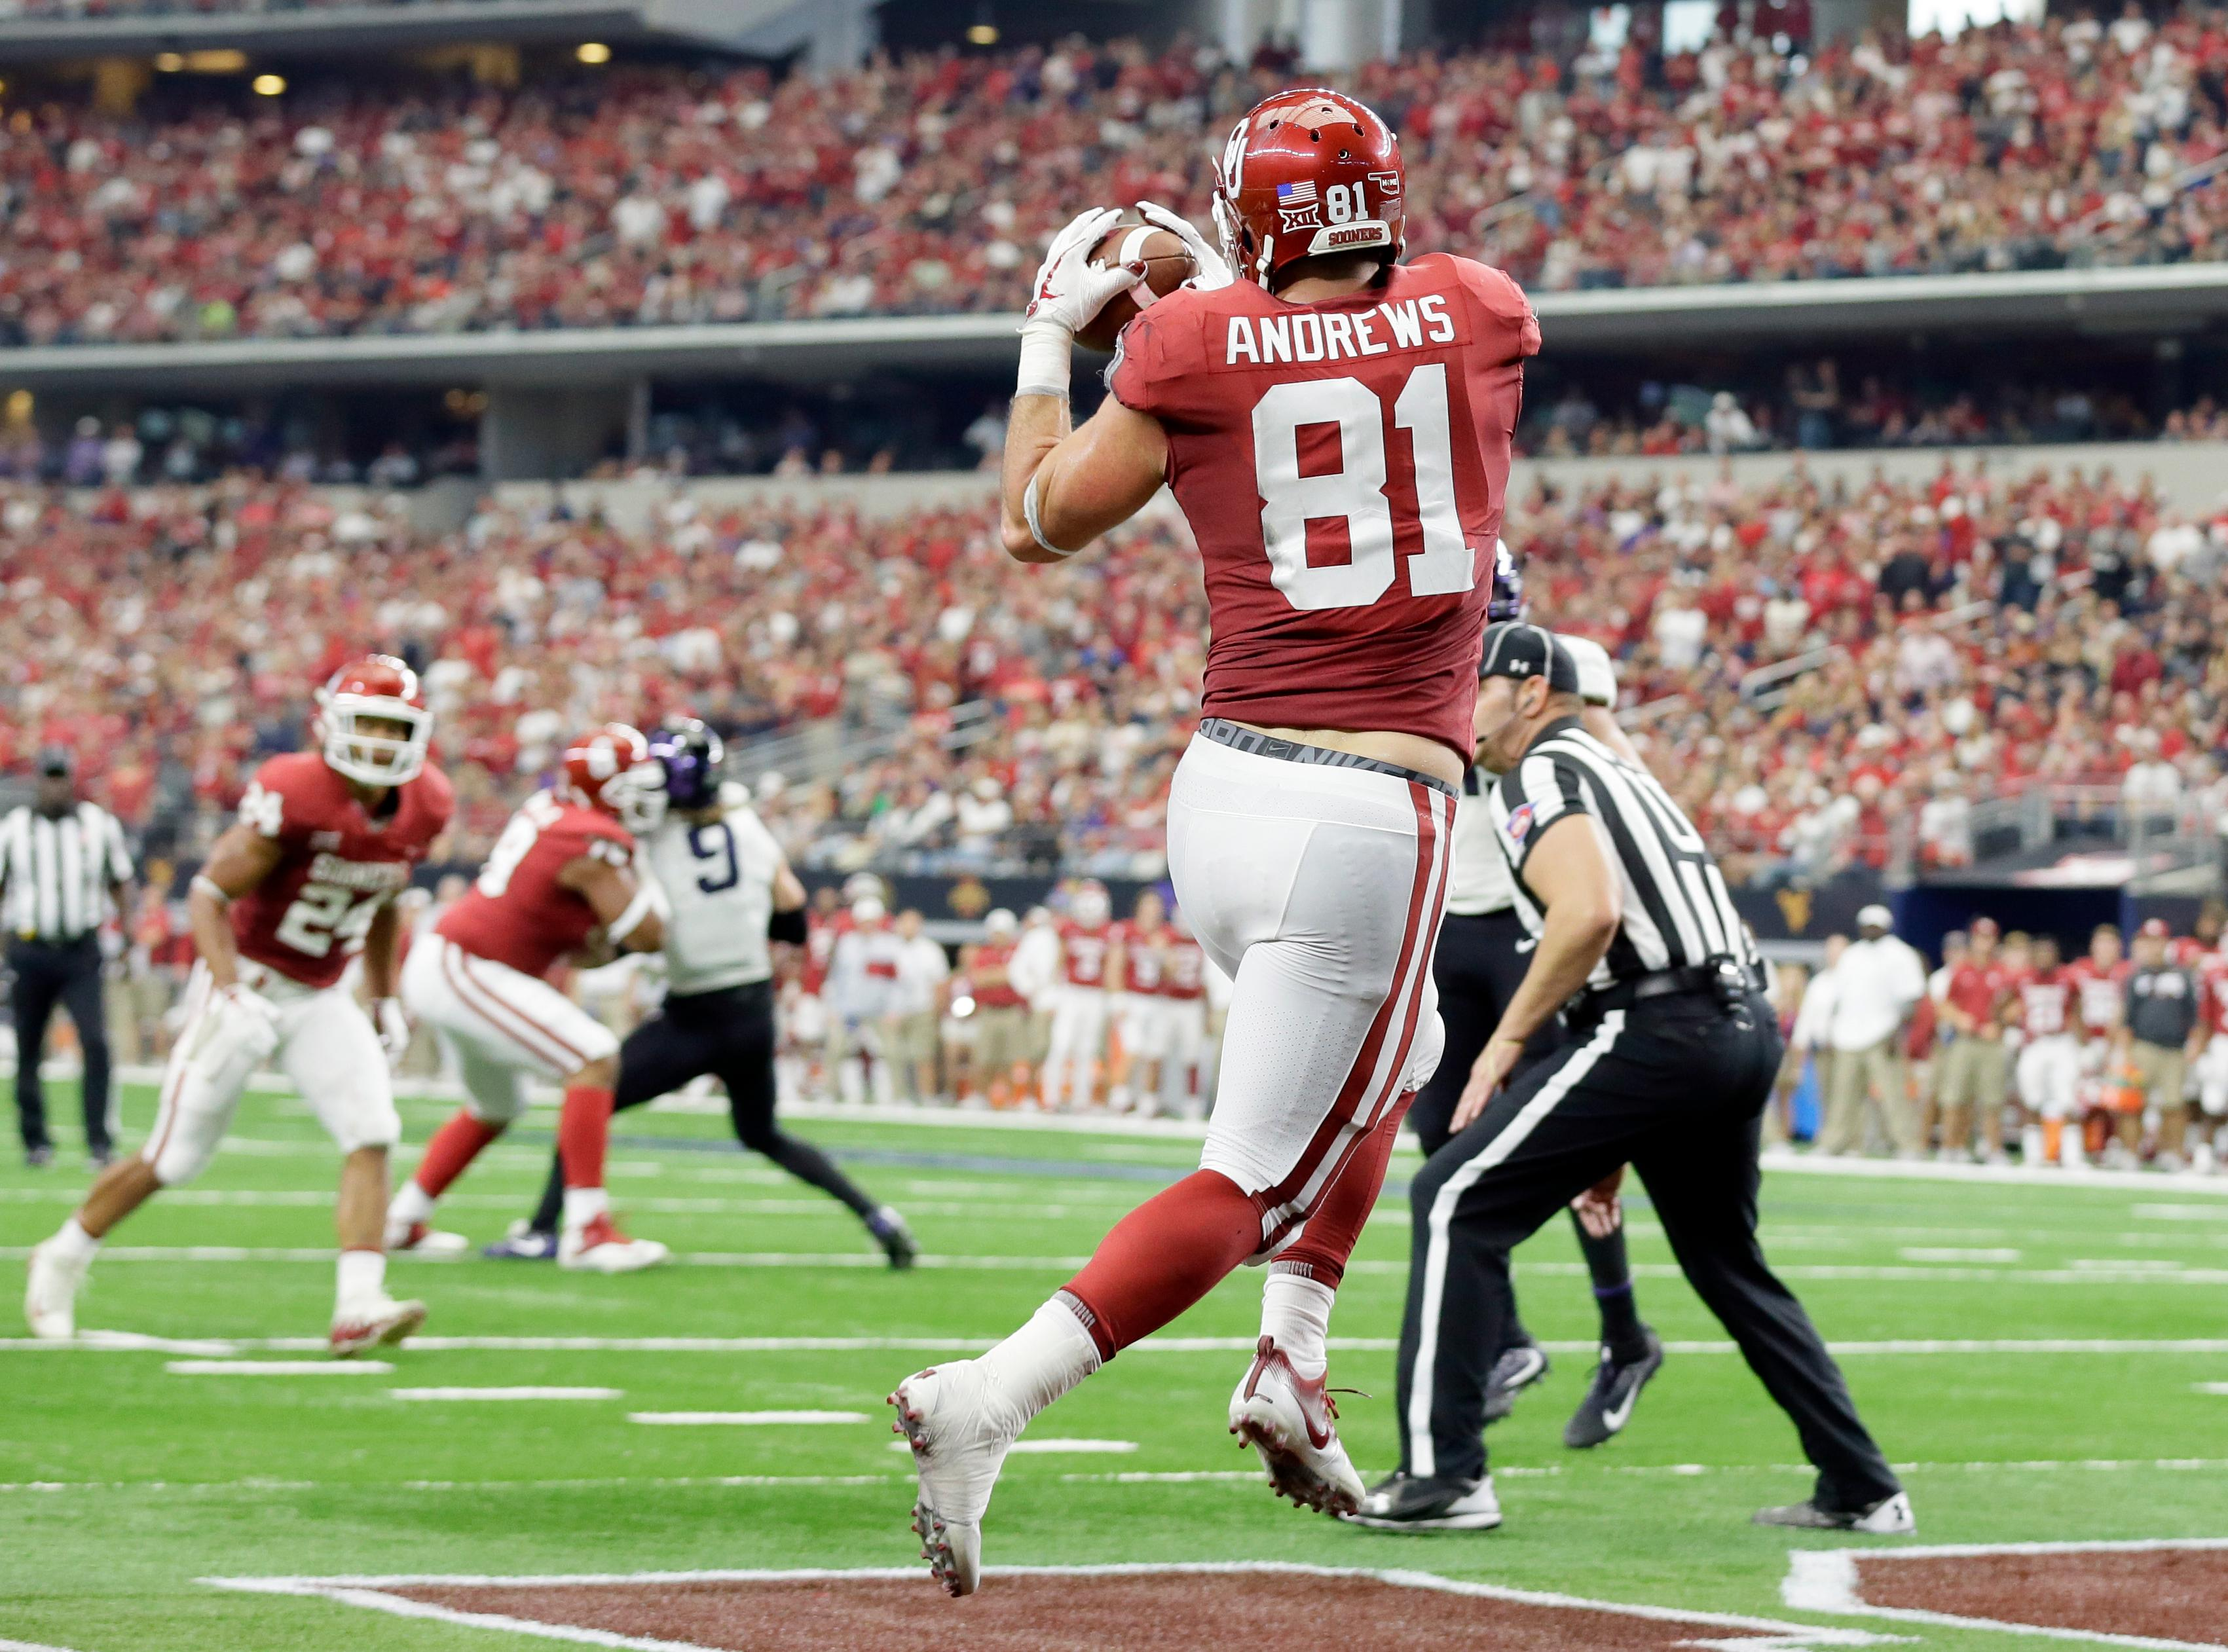 Oklahoma tight end Mark Andrews (81) catches a pass in the end zone for a touchdown in the first half of the Big 12 Conference championship NCAA college football game against TCU on Saturday, Dec. 2, 2017, in Arlington, Texas. (AP Photo/Tony Gutierrez)